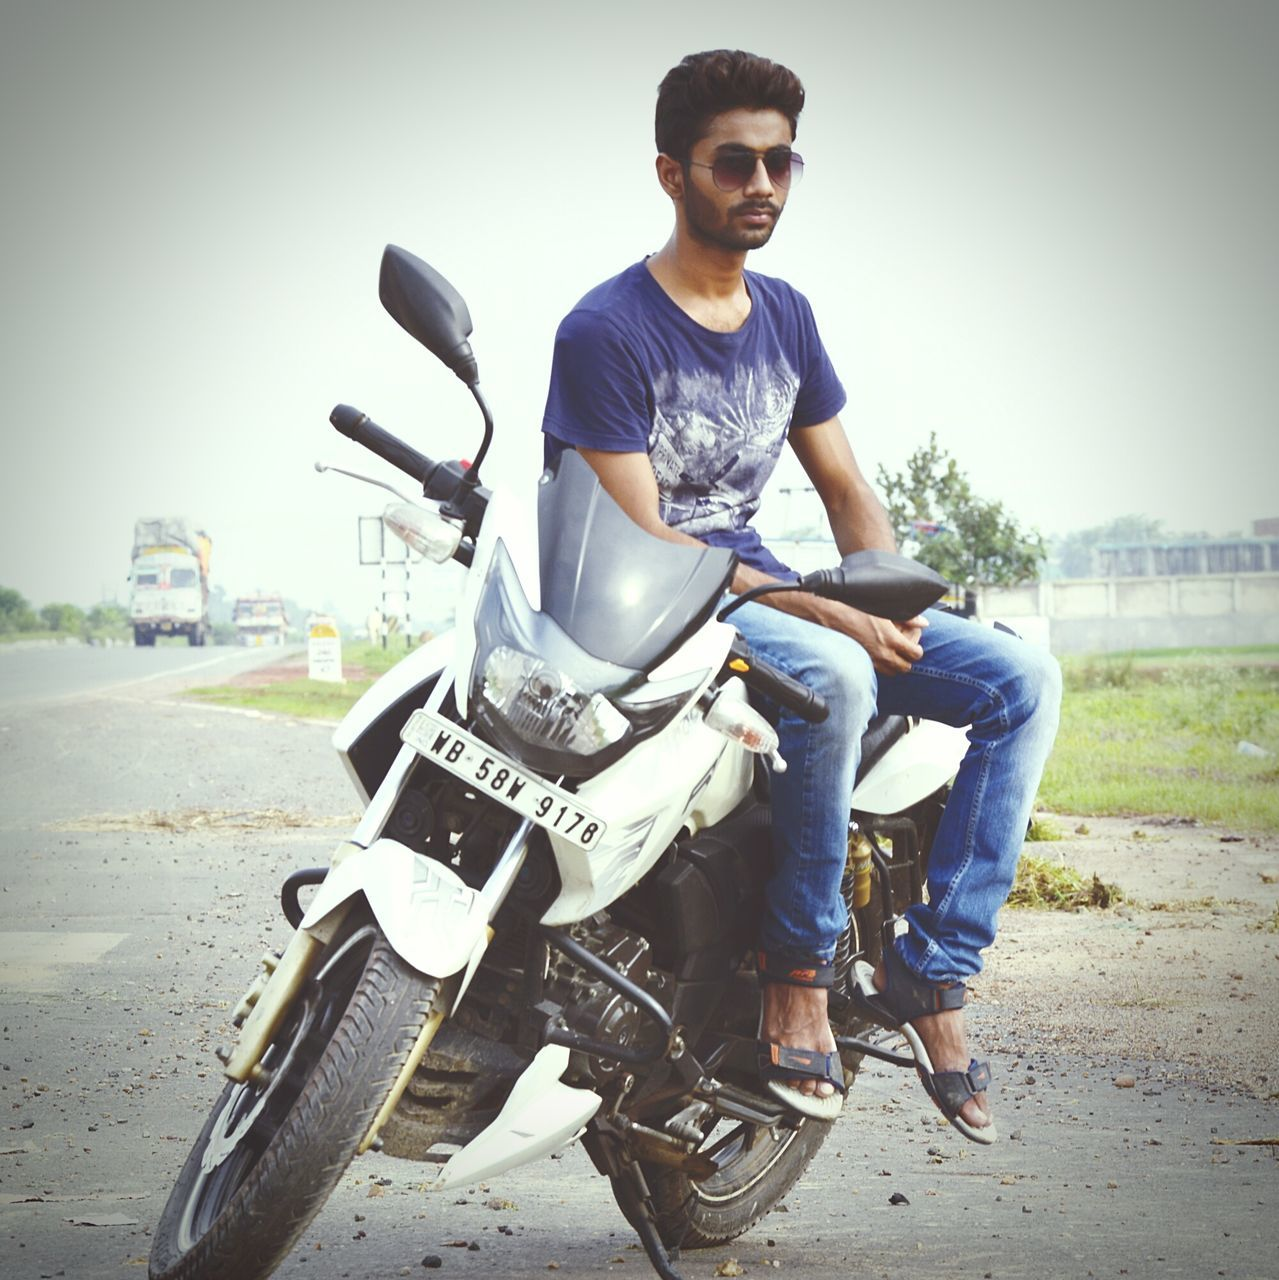 casual clothing, transportation, young adult, full length, land vehicle, young men, sitting, motorcycle, real people, mode of transport, one person, outdoors, day, scooter, clear sky, smiling